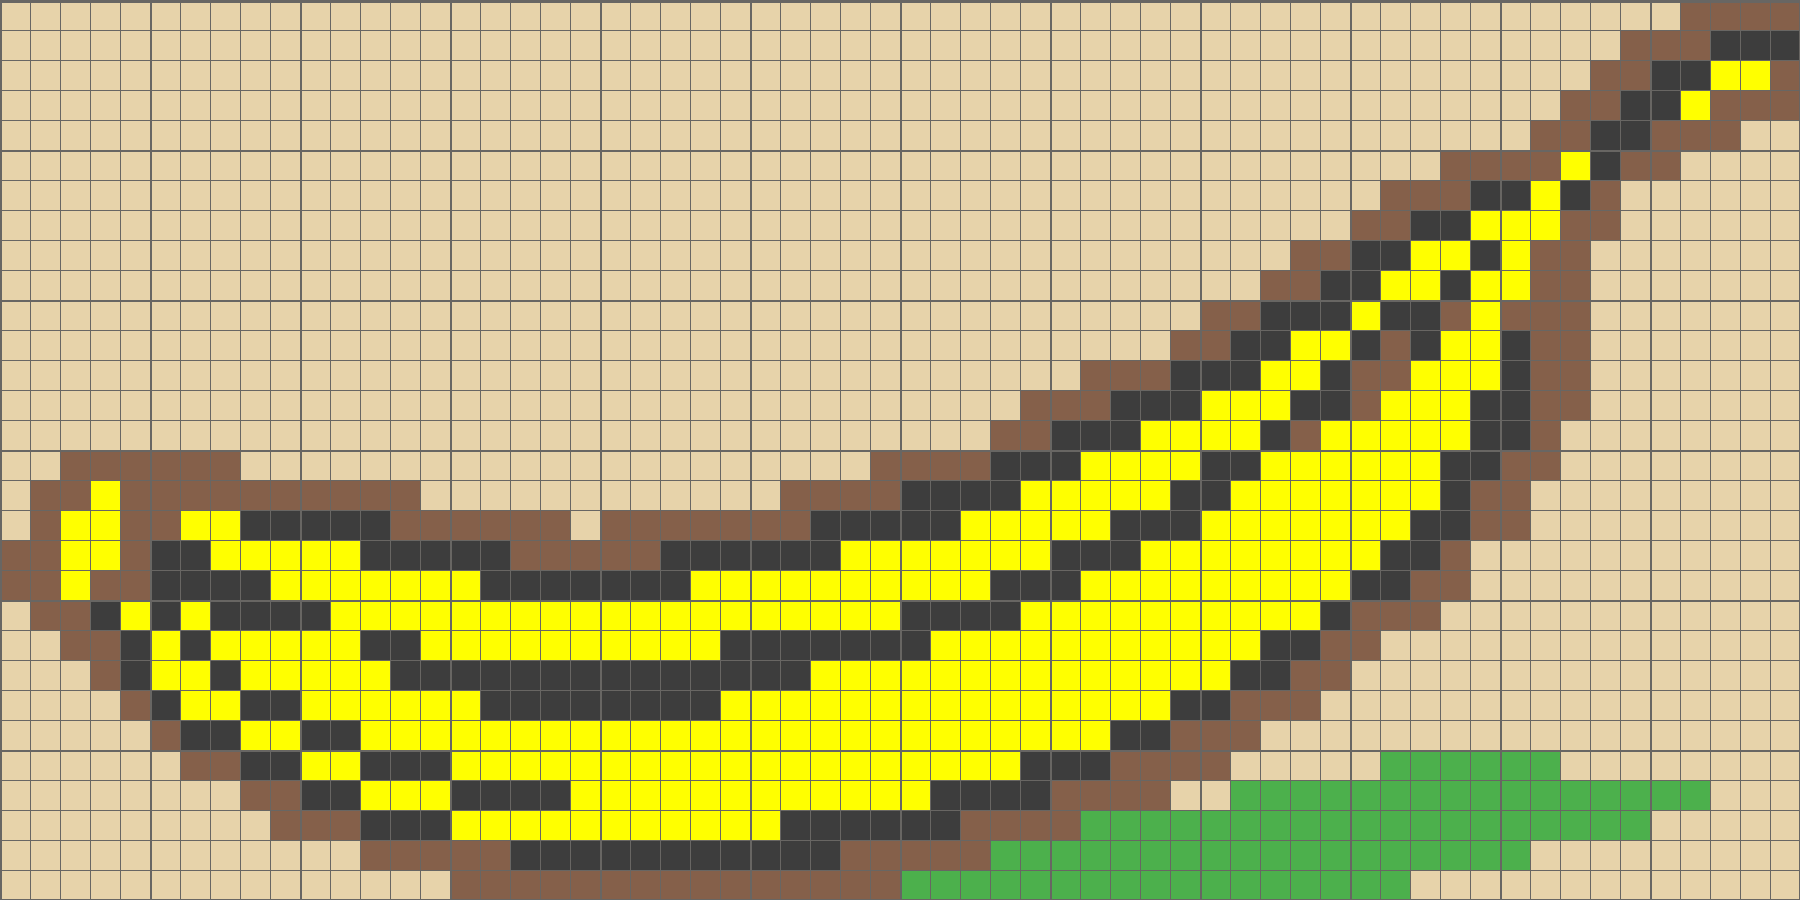 Solution for color CrossMe Level 7.60 - Banana